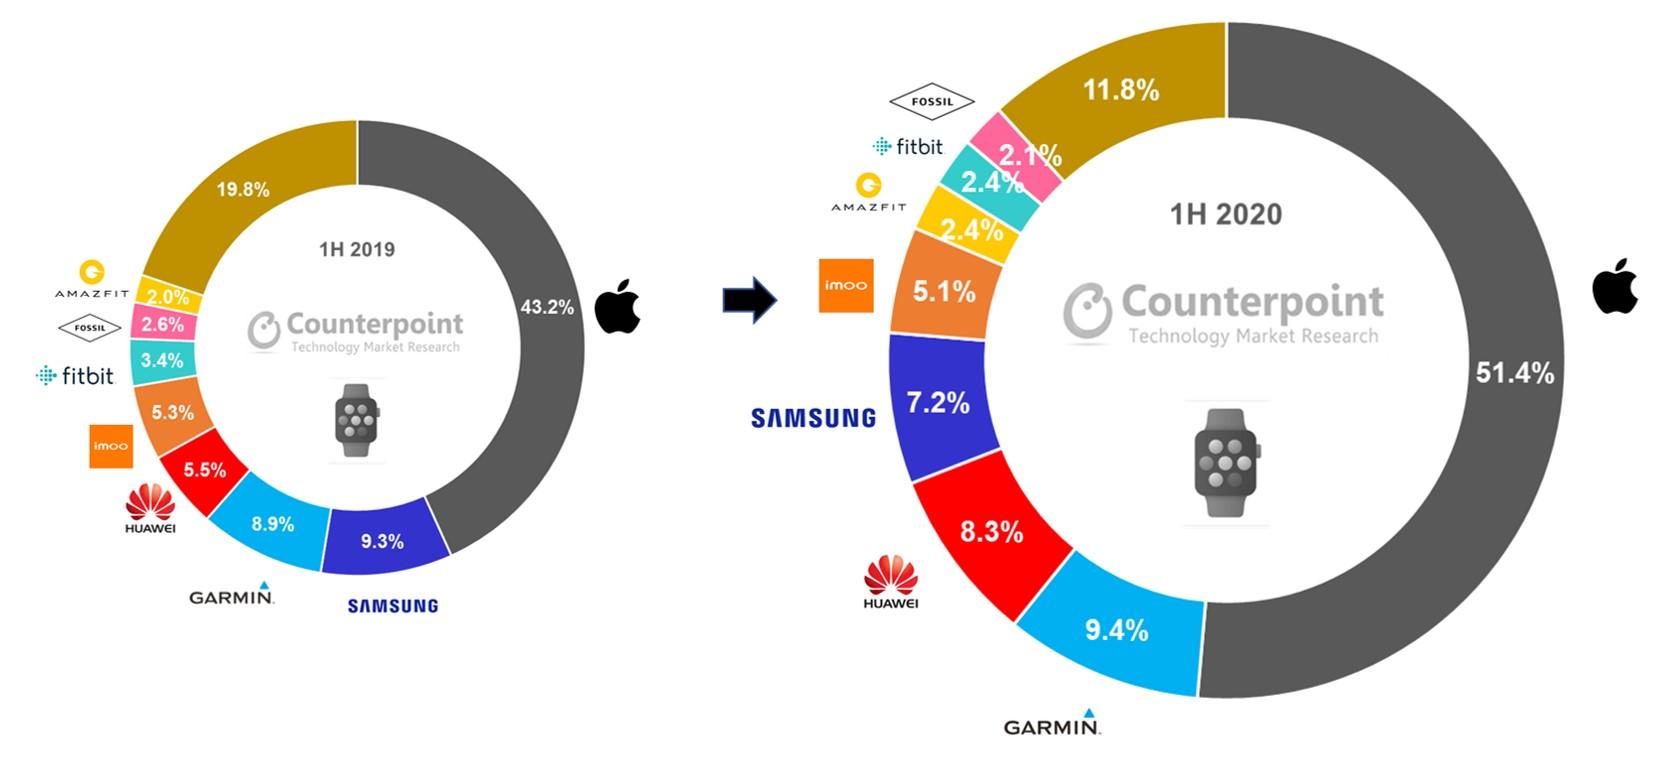 Counterpoint Research Global Smartwatch Shipment Revenue Share % in H1 2020 vs H1 2019